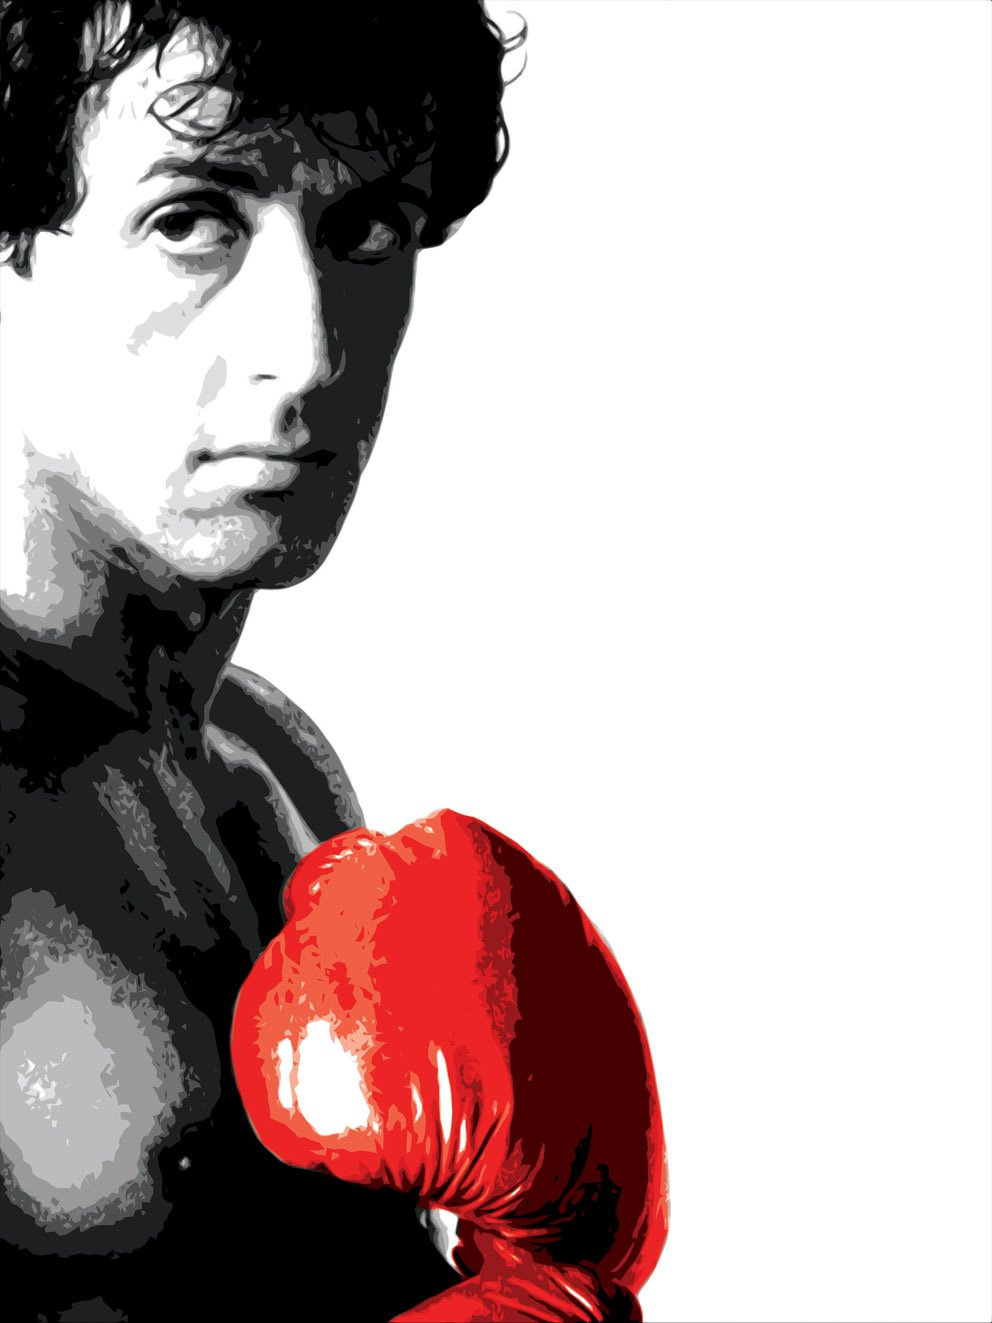 Rocky Balboa Red Glove MOVIE Pop Art Poster A2: Amazon.co.uk ...